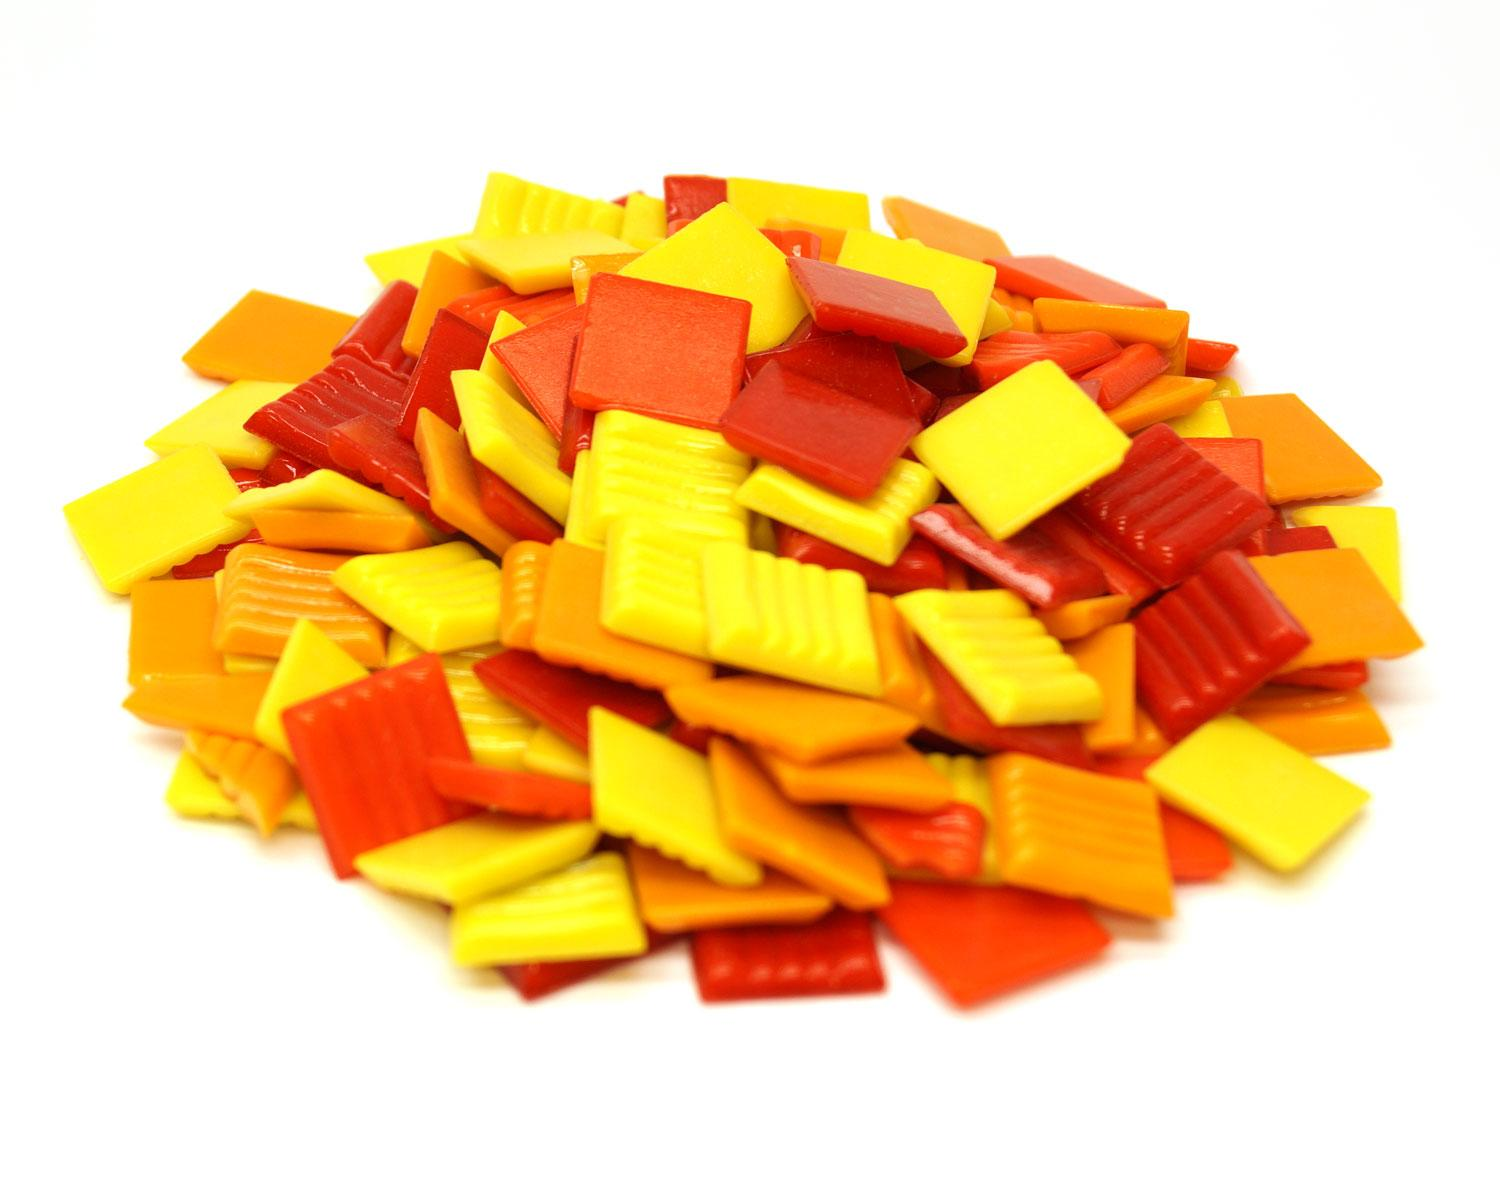 3/4 Fire Tile Mix - 1 Lb